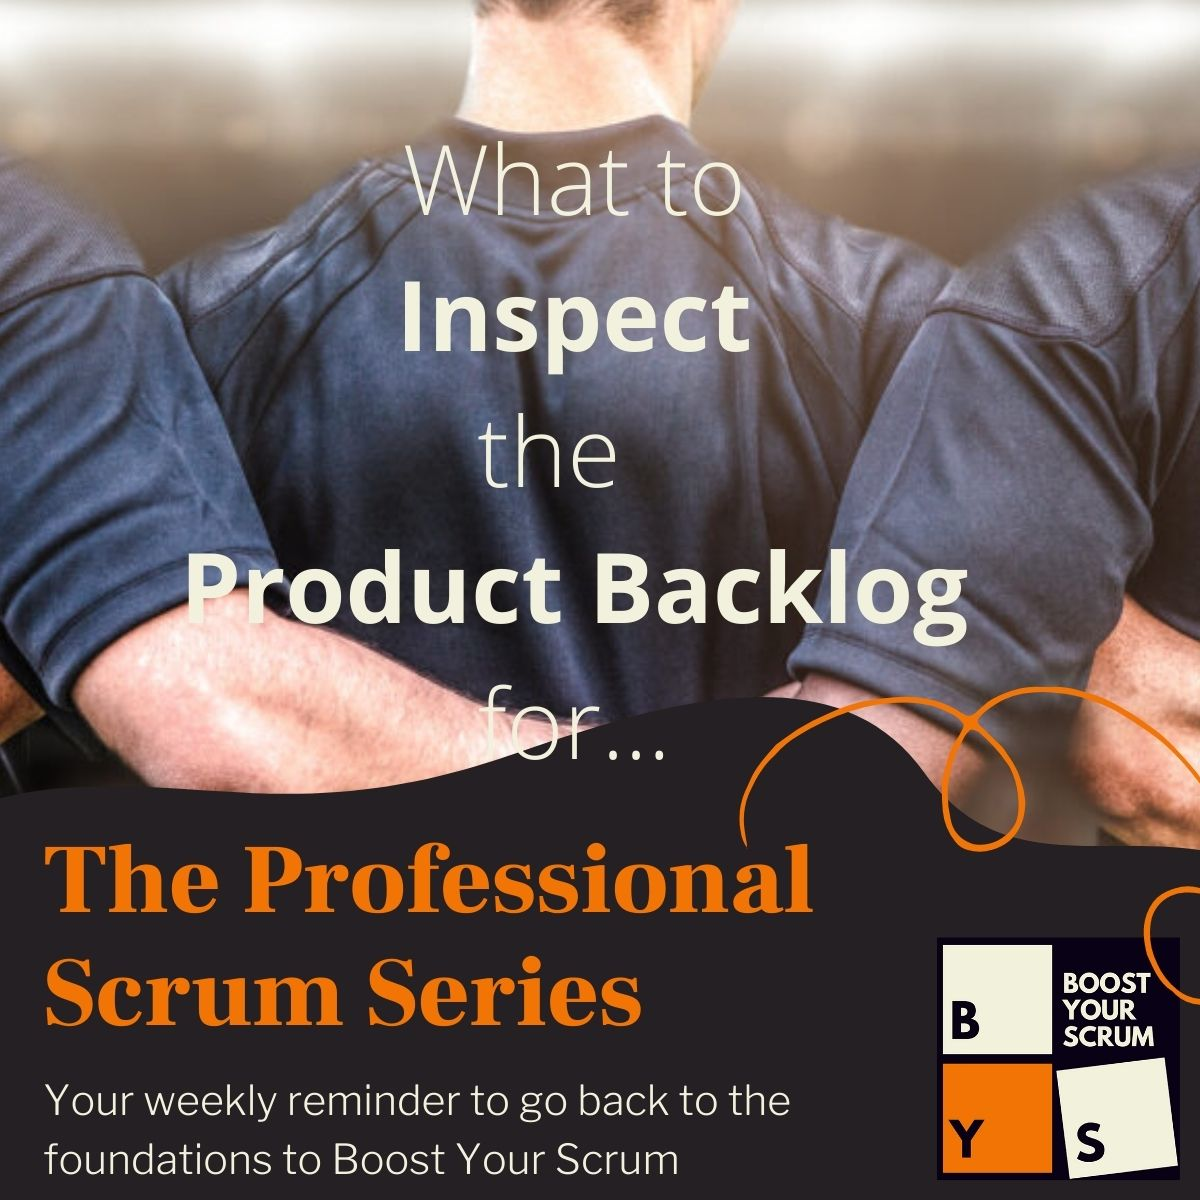 What to Inspect the Product Backlog for?